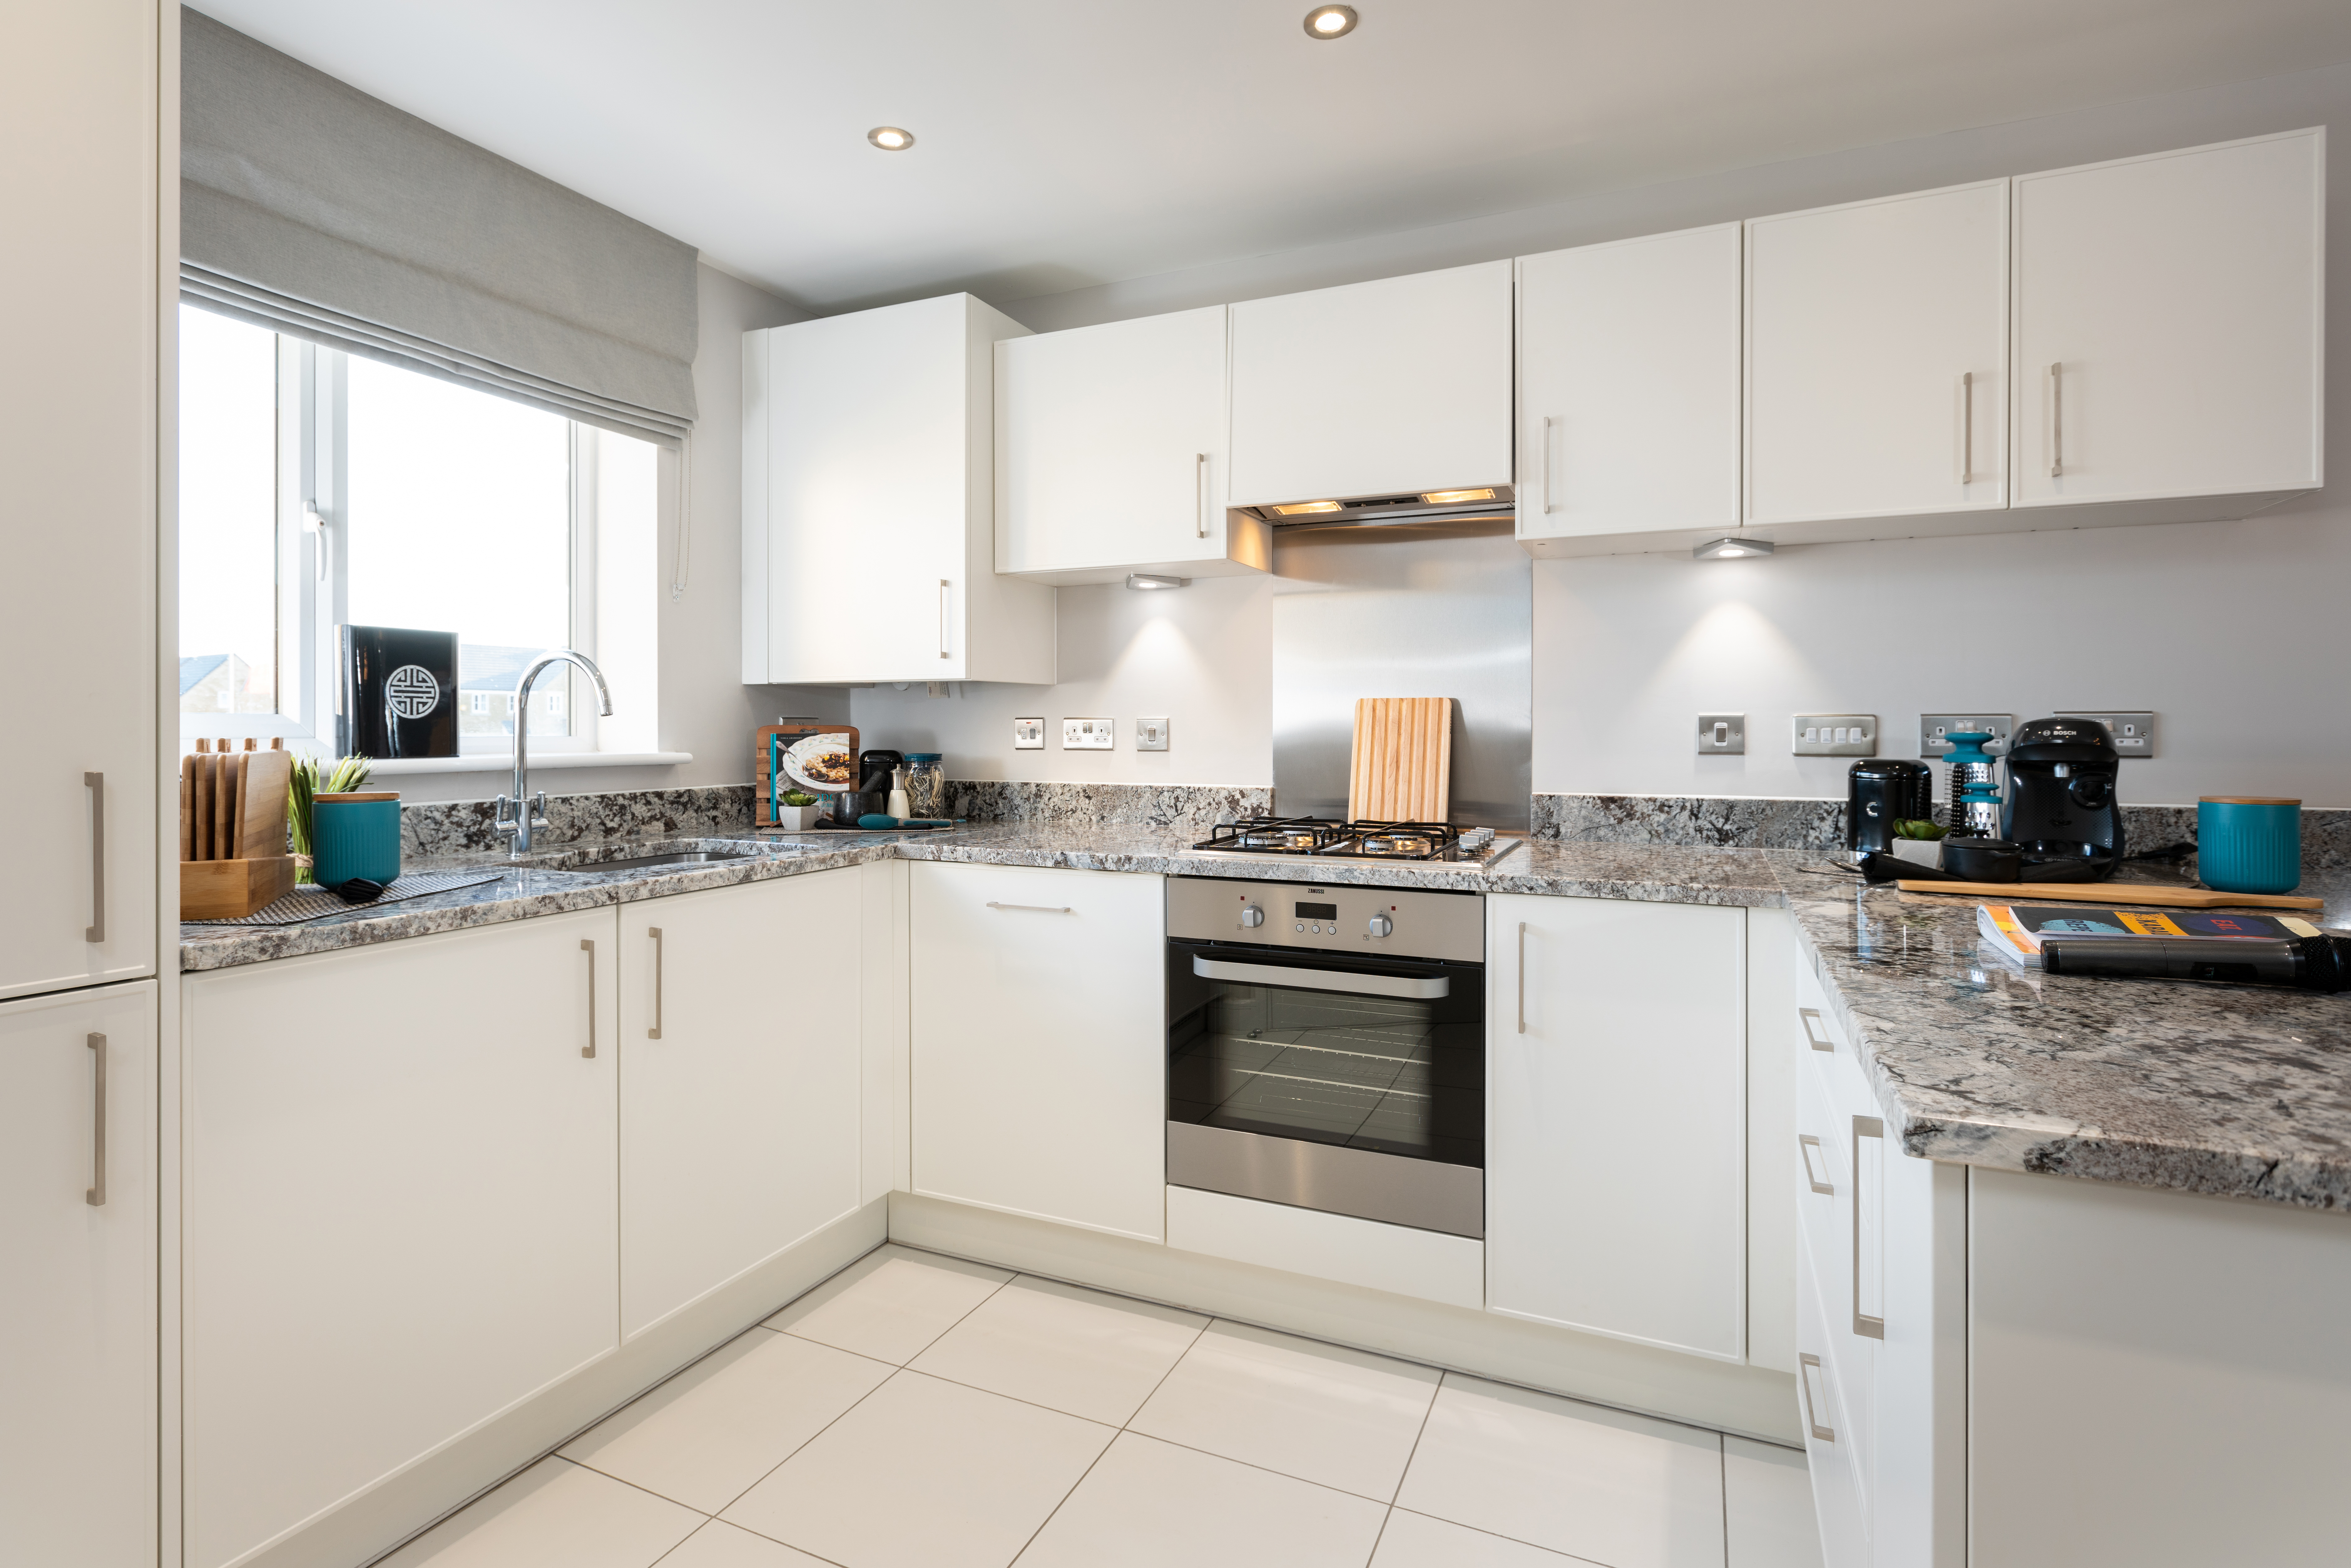 TW YO_Crosfield Park_1645_Alton G_Kitchen 1